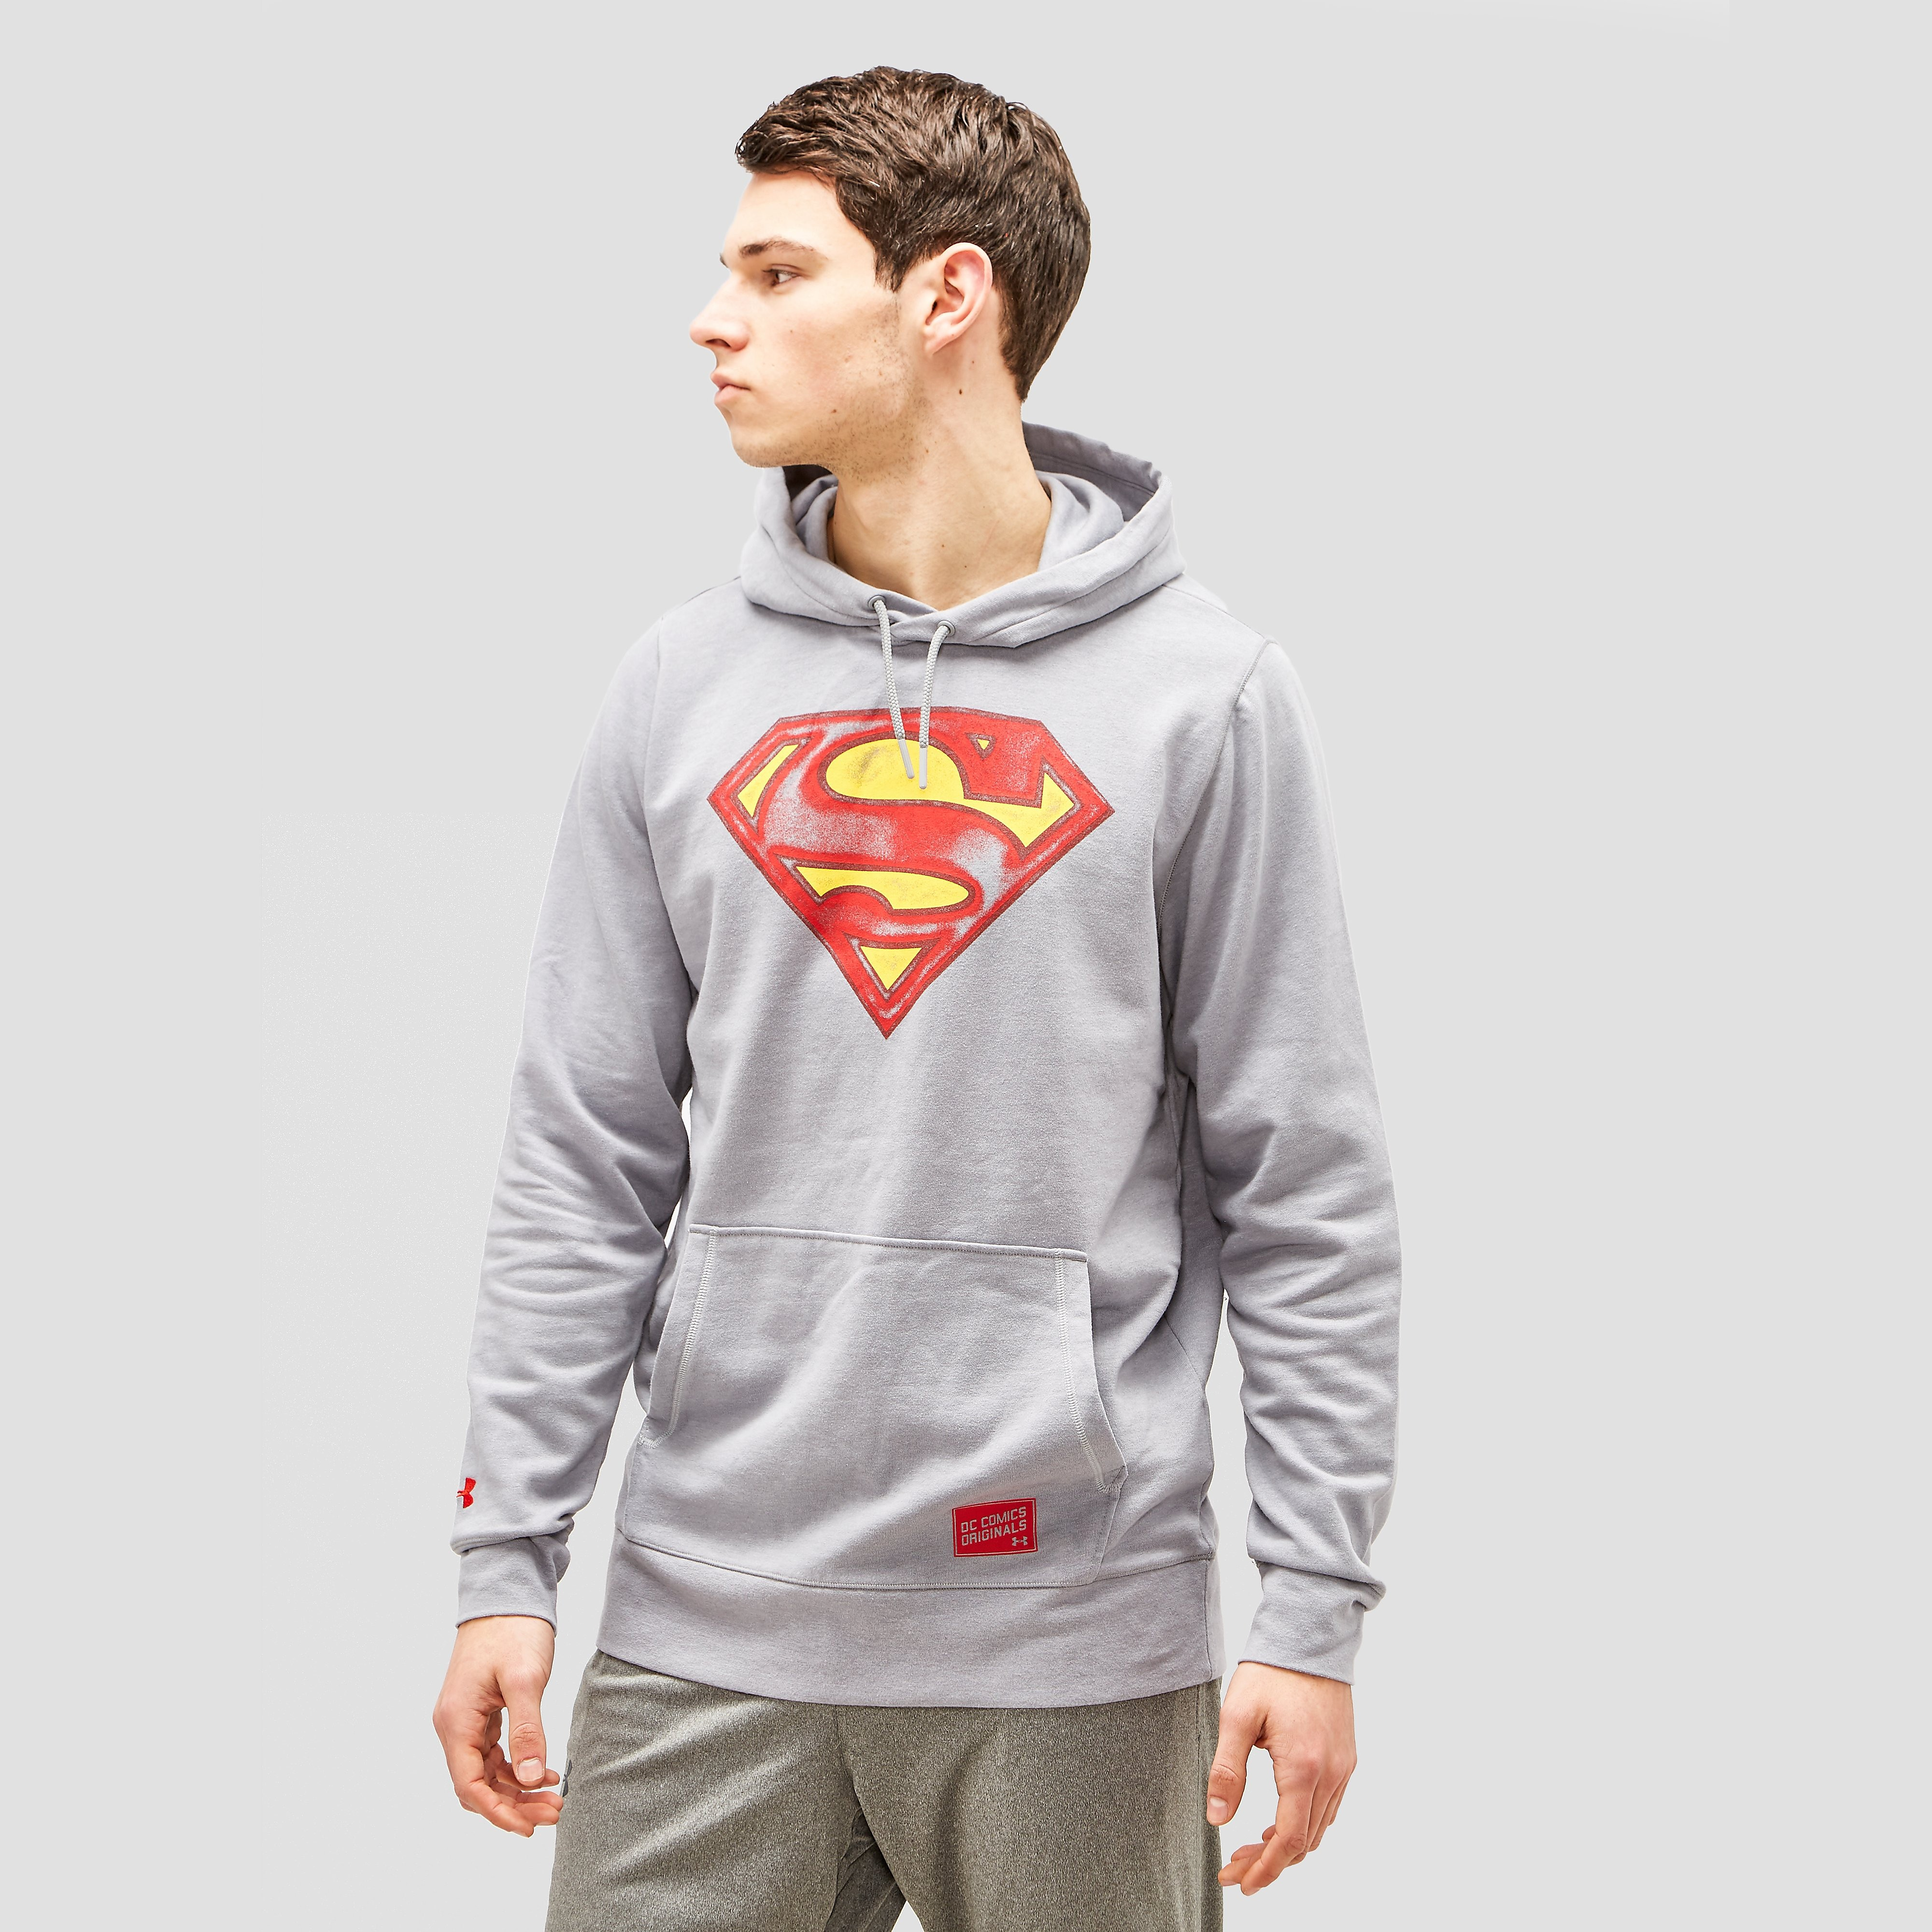 UNDER ARMOUR TRANSFORM YOURSELF SUPERMAN VINTAGE HOODIE